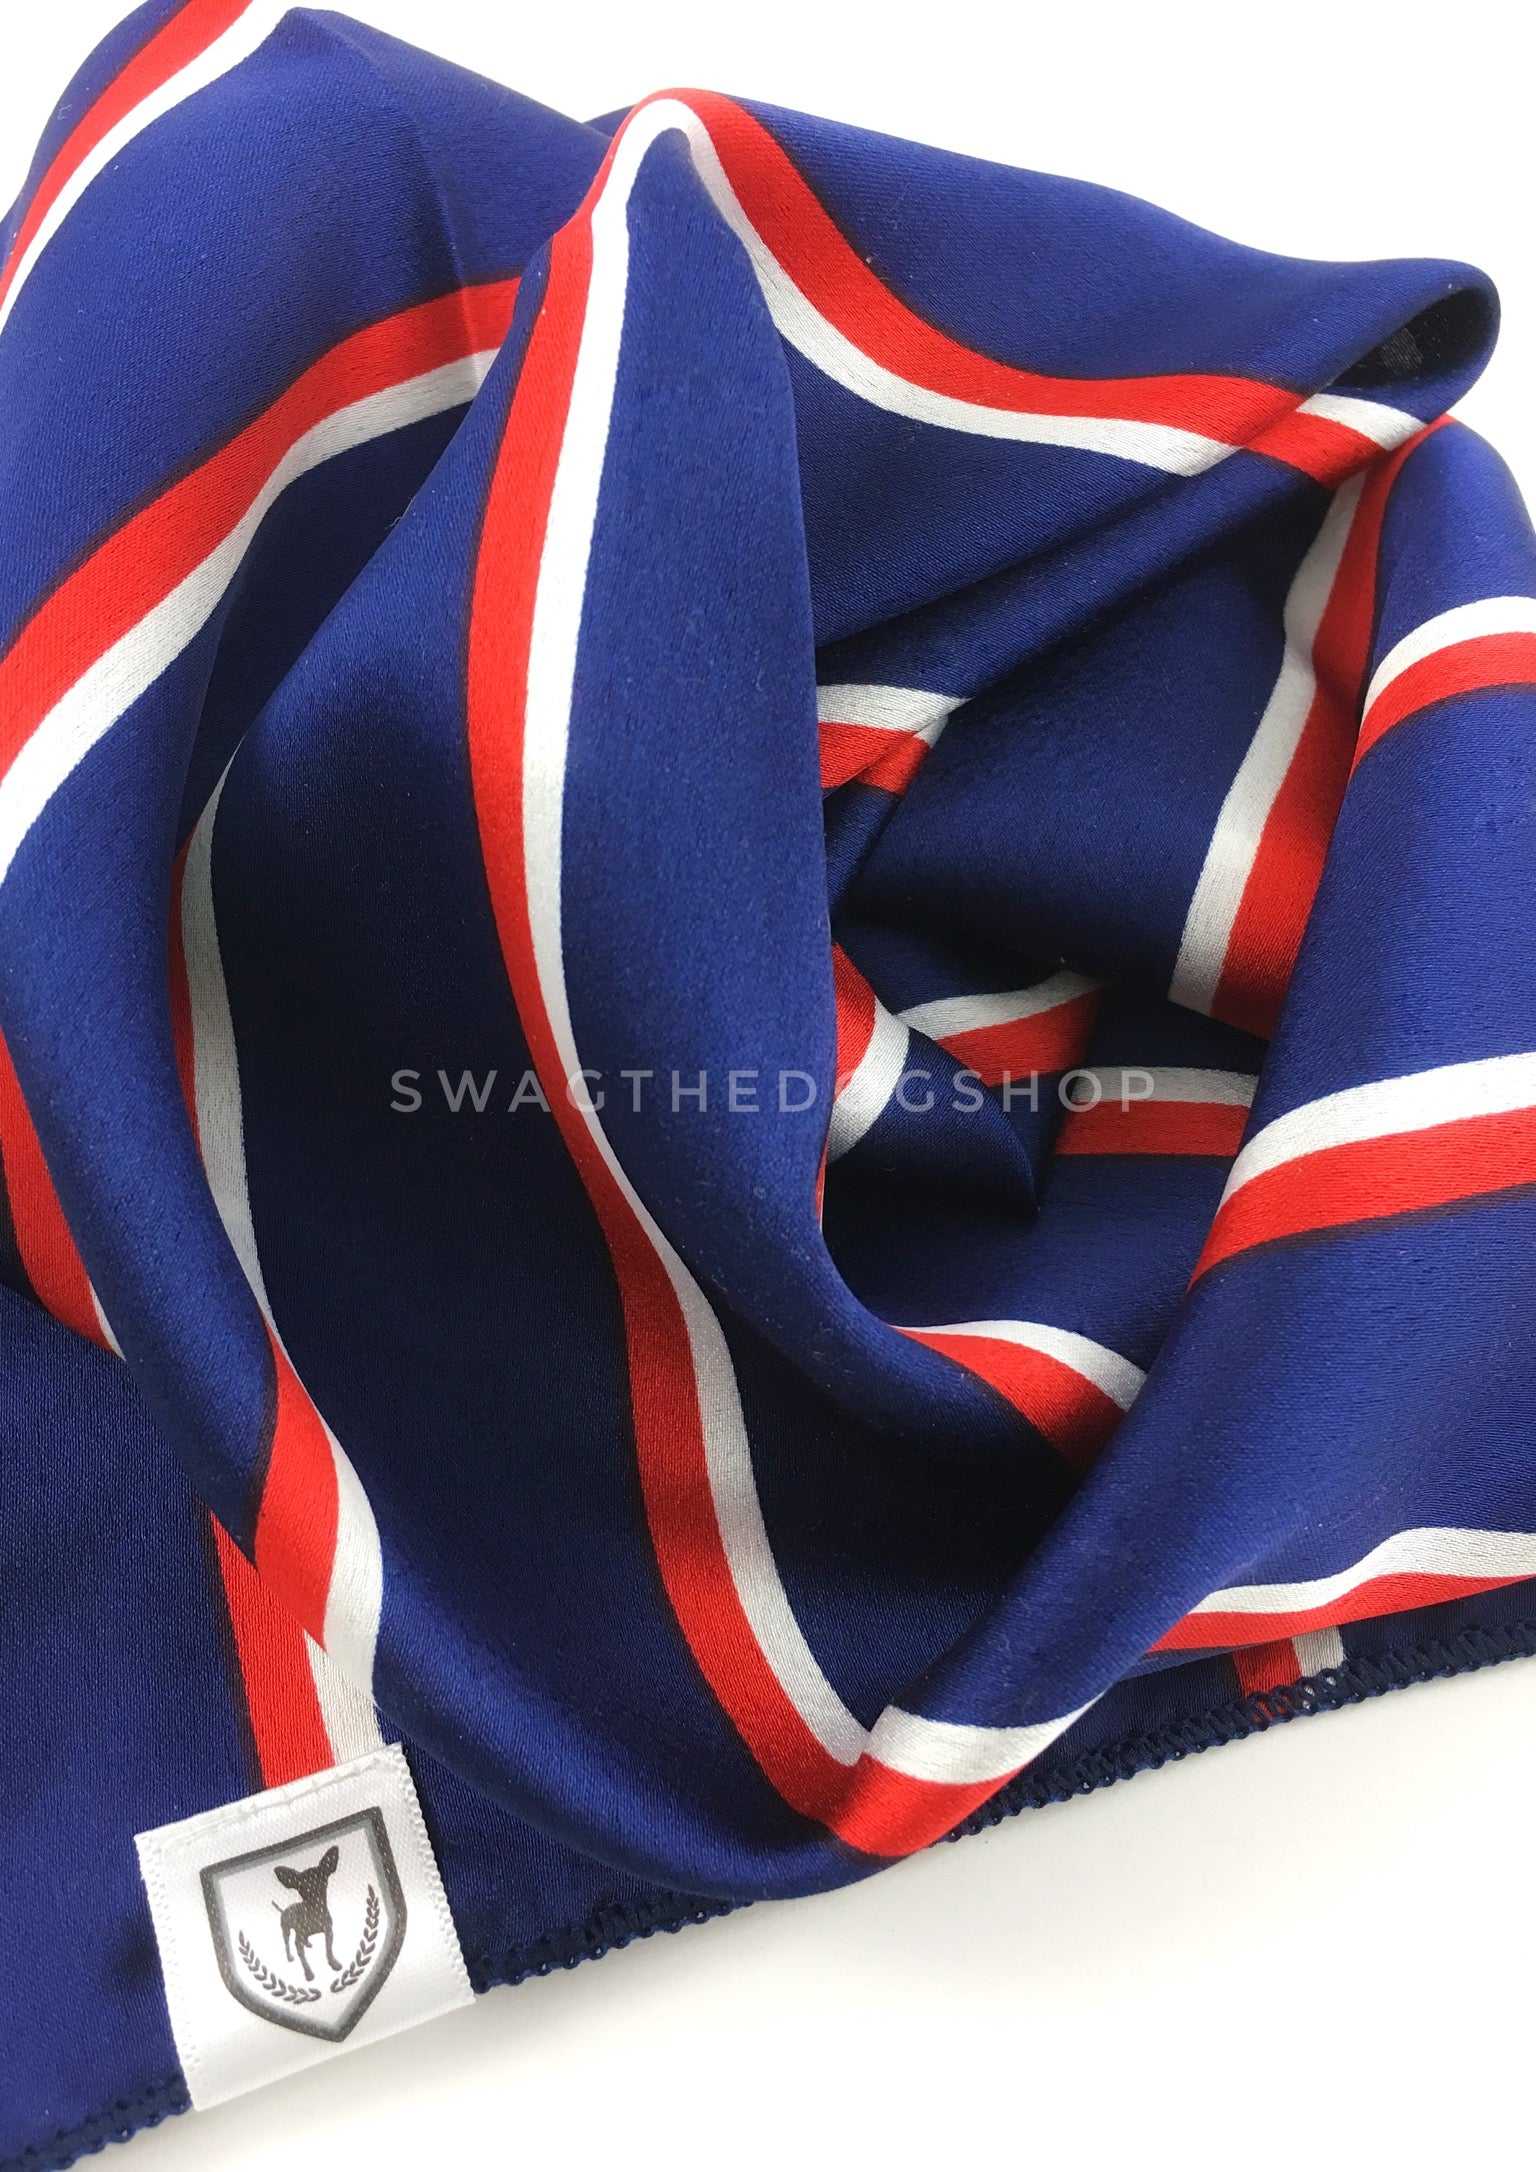 Afternoon in Paris Swagdana Scarf - Close-up View of Product. Dog Bandana. Dog Scarf